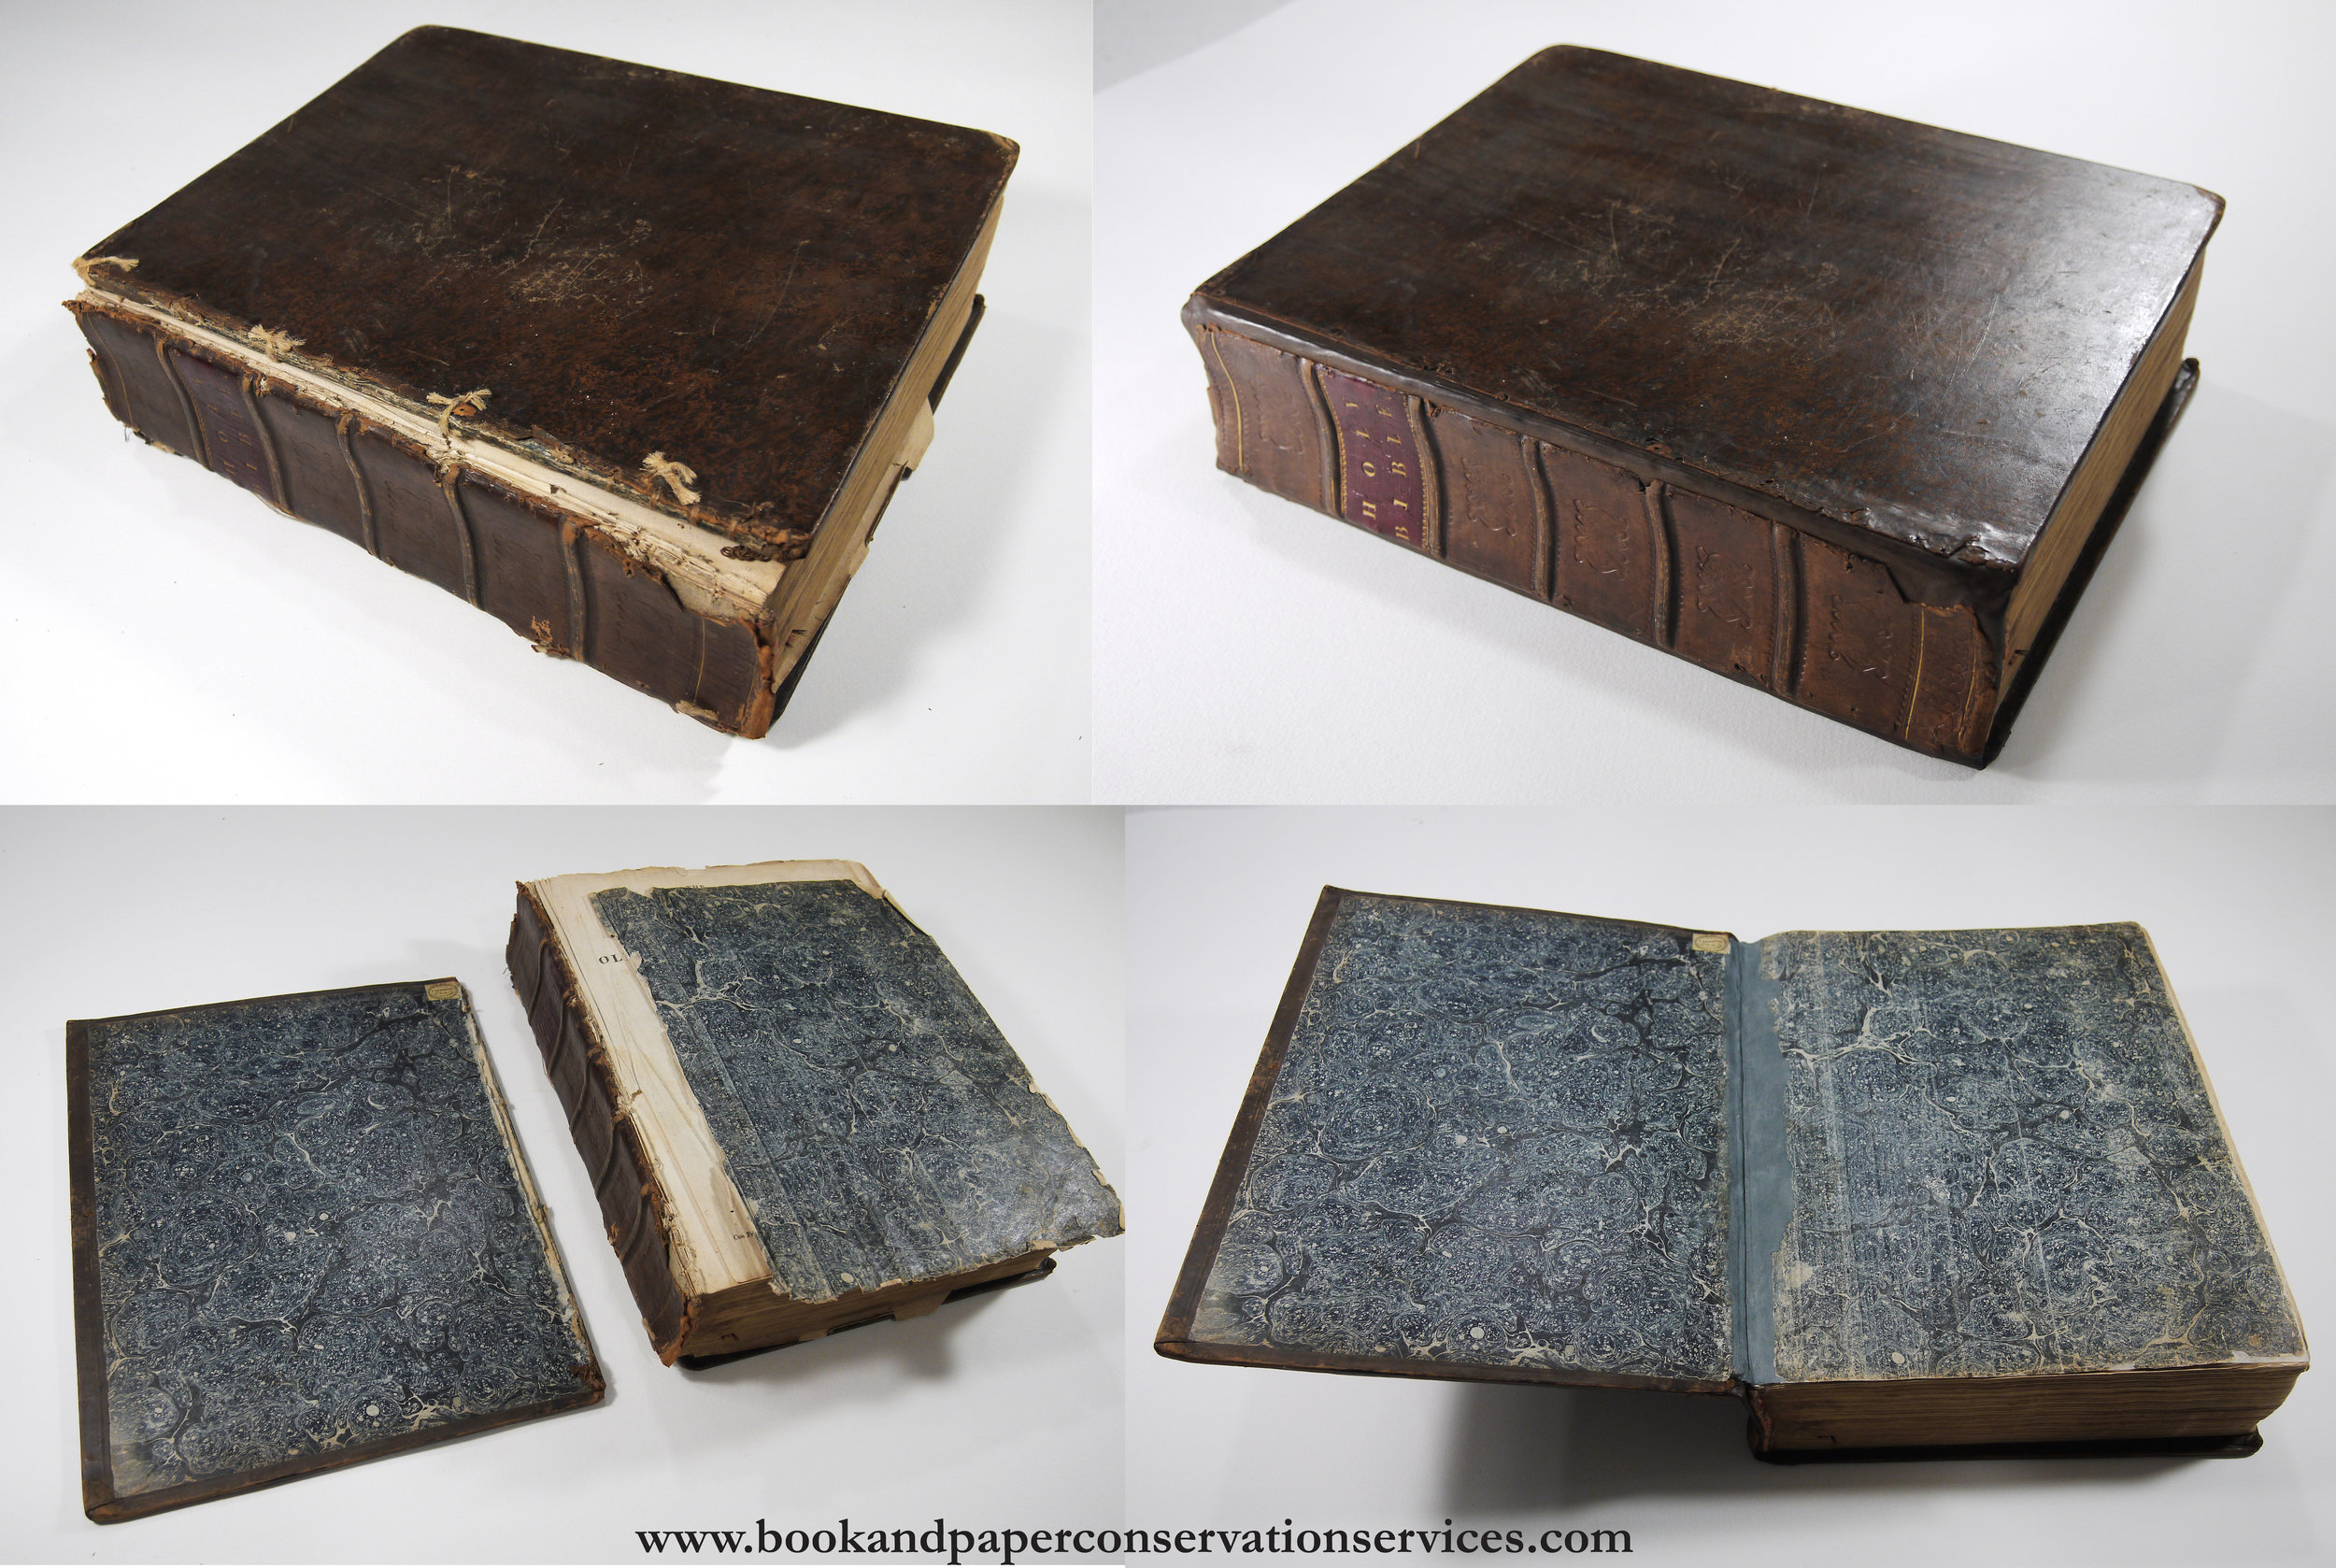 Family Bible before and after conservation treatment.